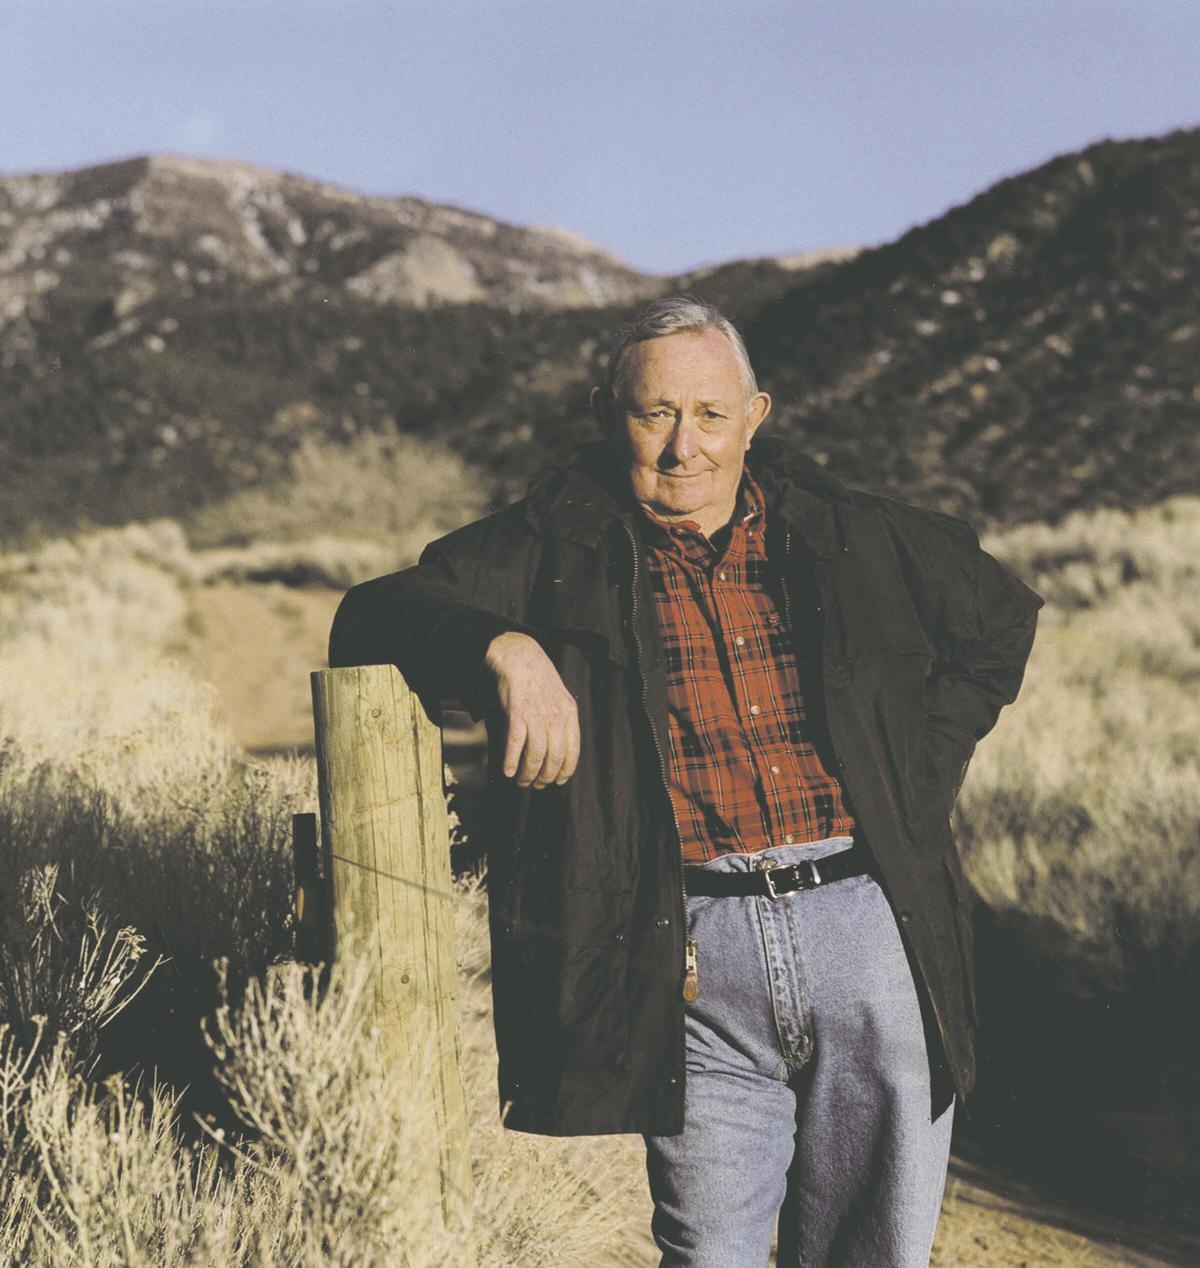 Tony Hillerman's 'The Blessing Way': The book that launched a groundbreaking series